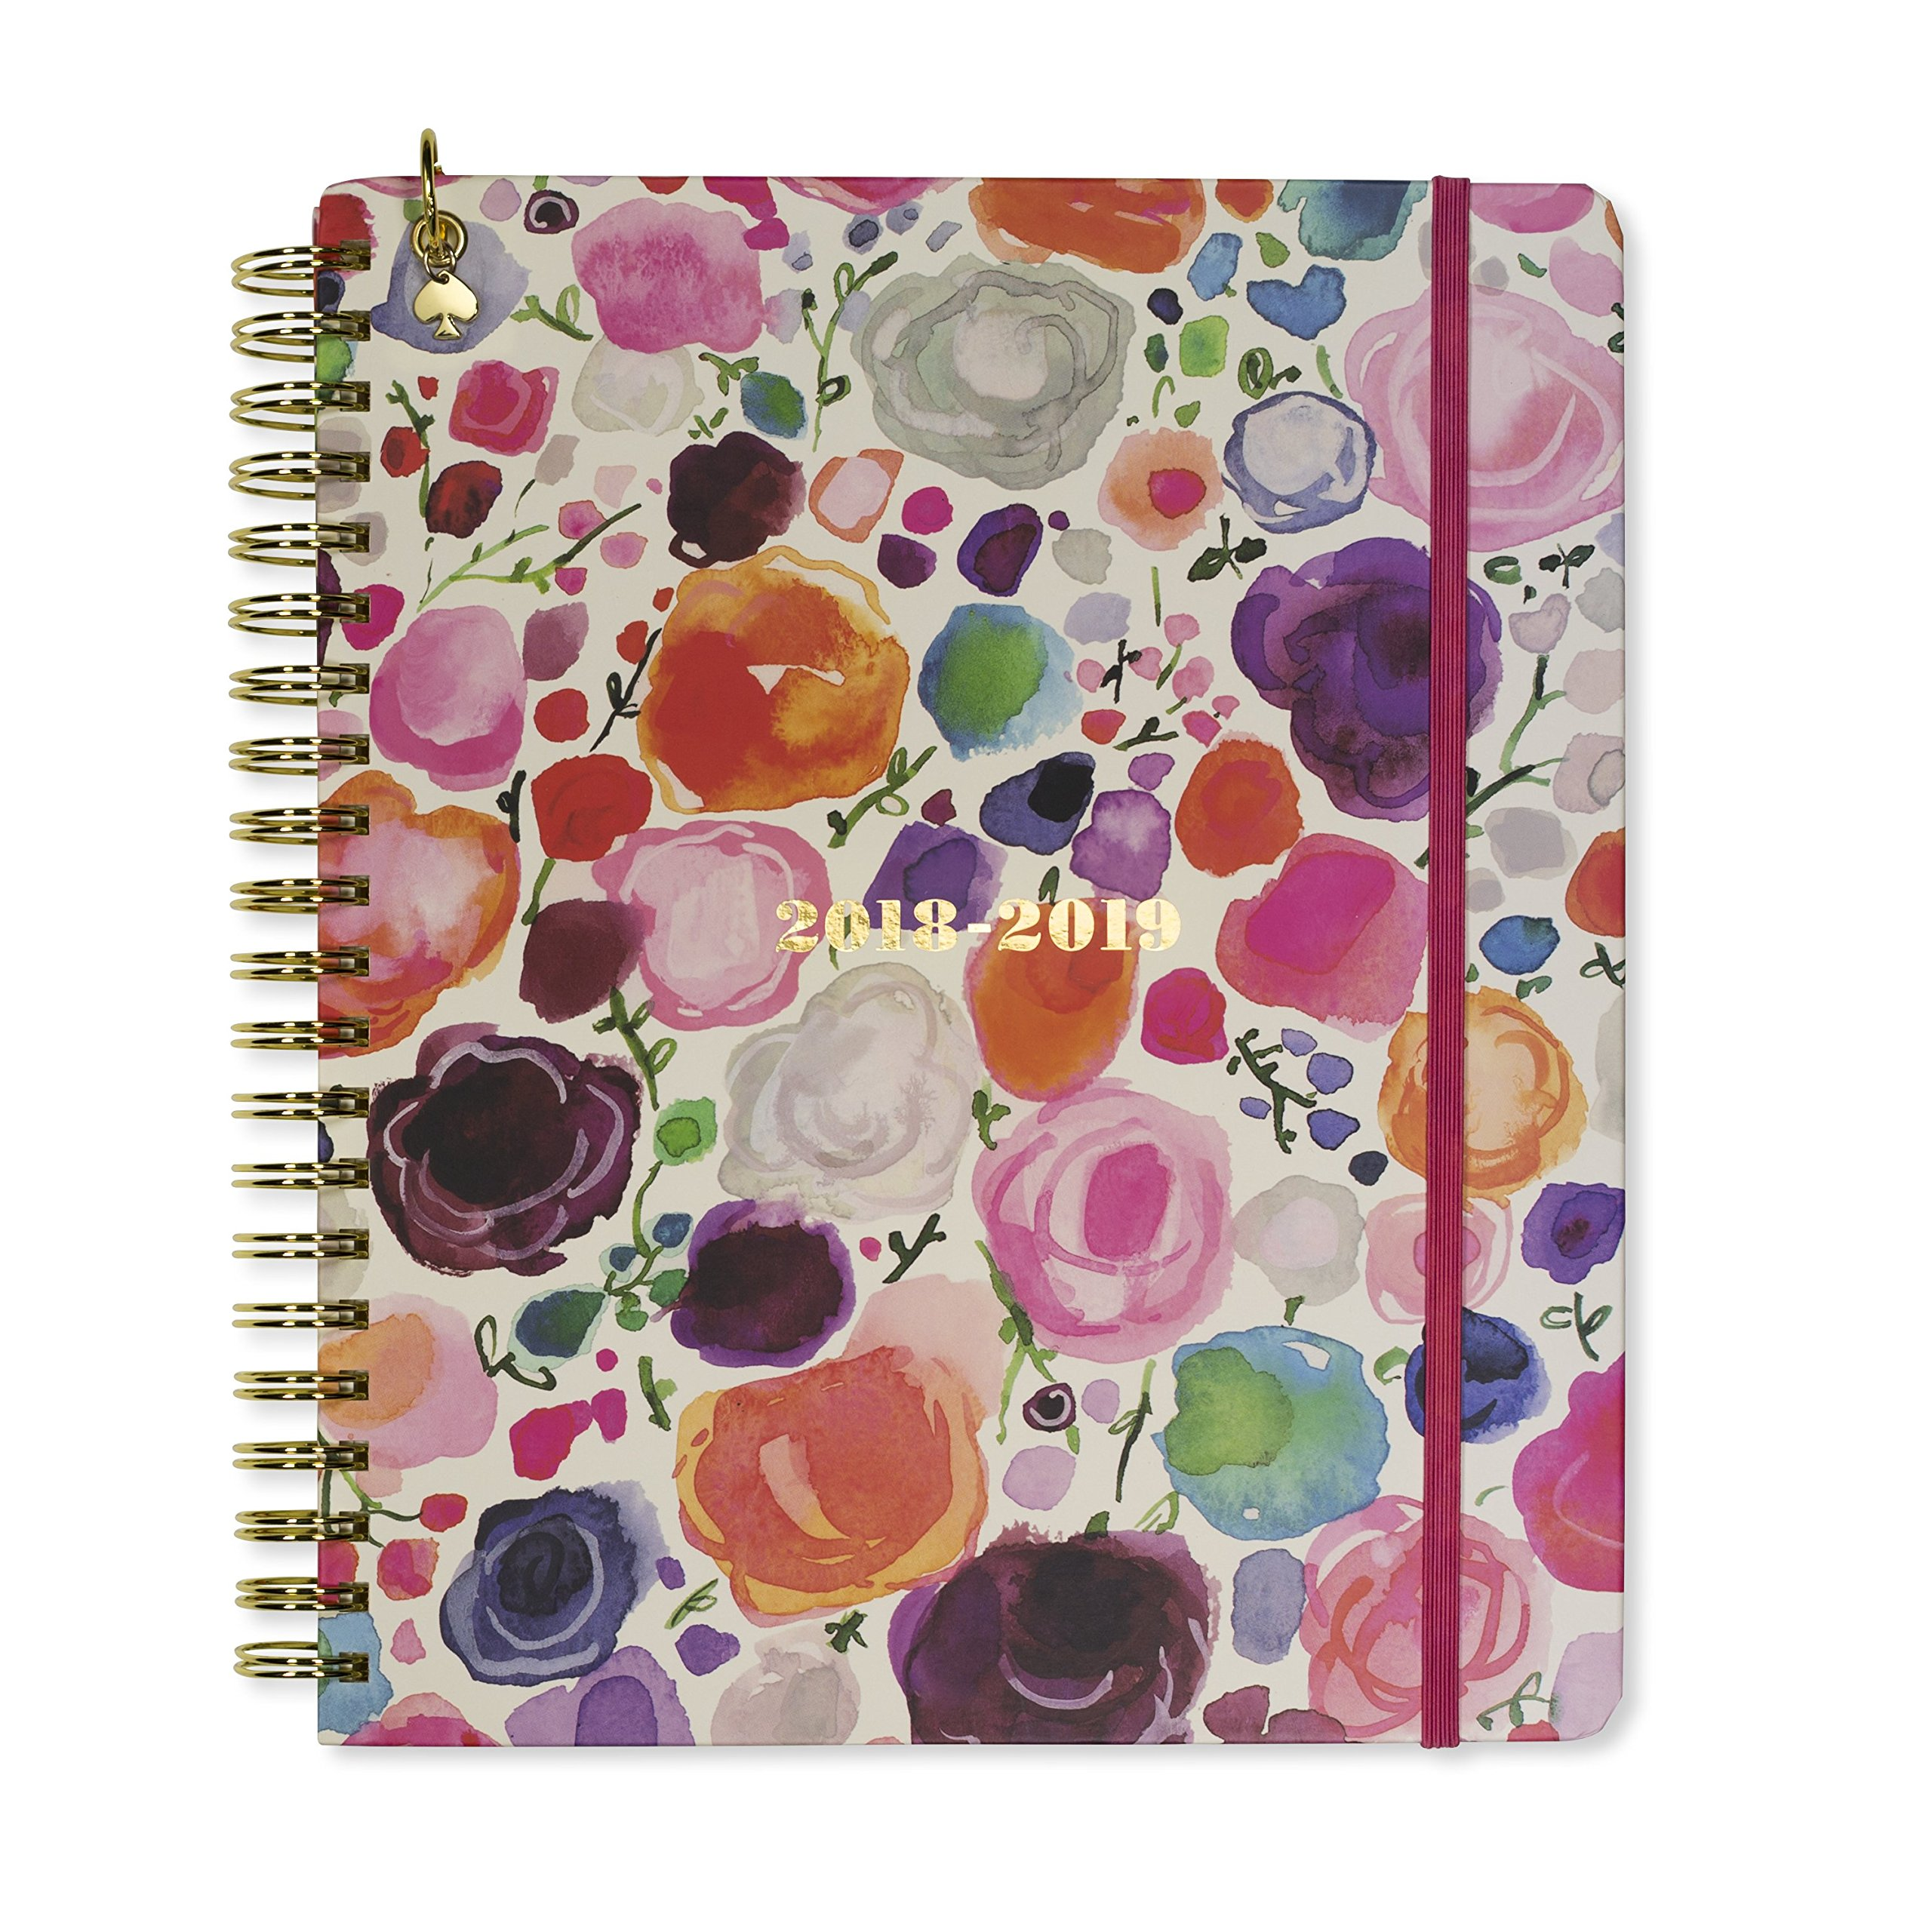 Kate Spade Mega Academic Daily Planner 2018-2019 with Daily Weekly Monthly Views and Happy Stickers (Floral)